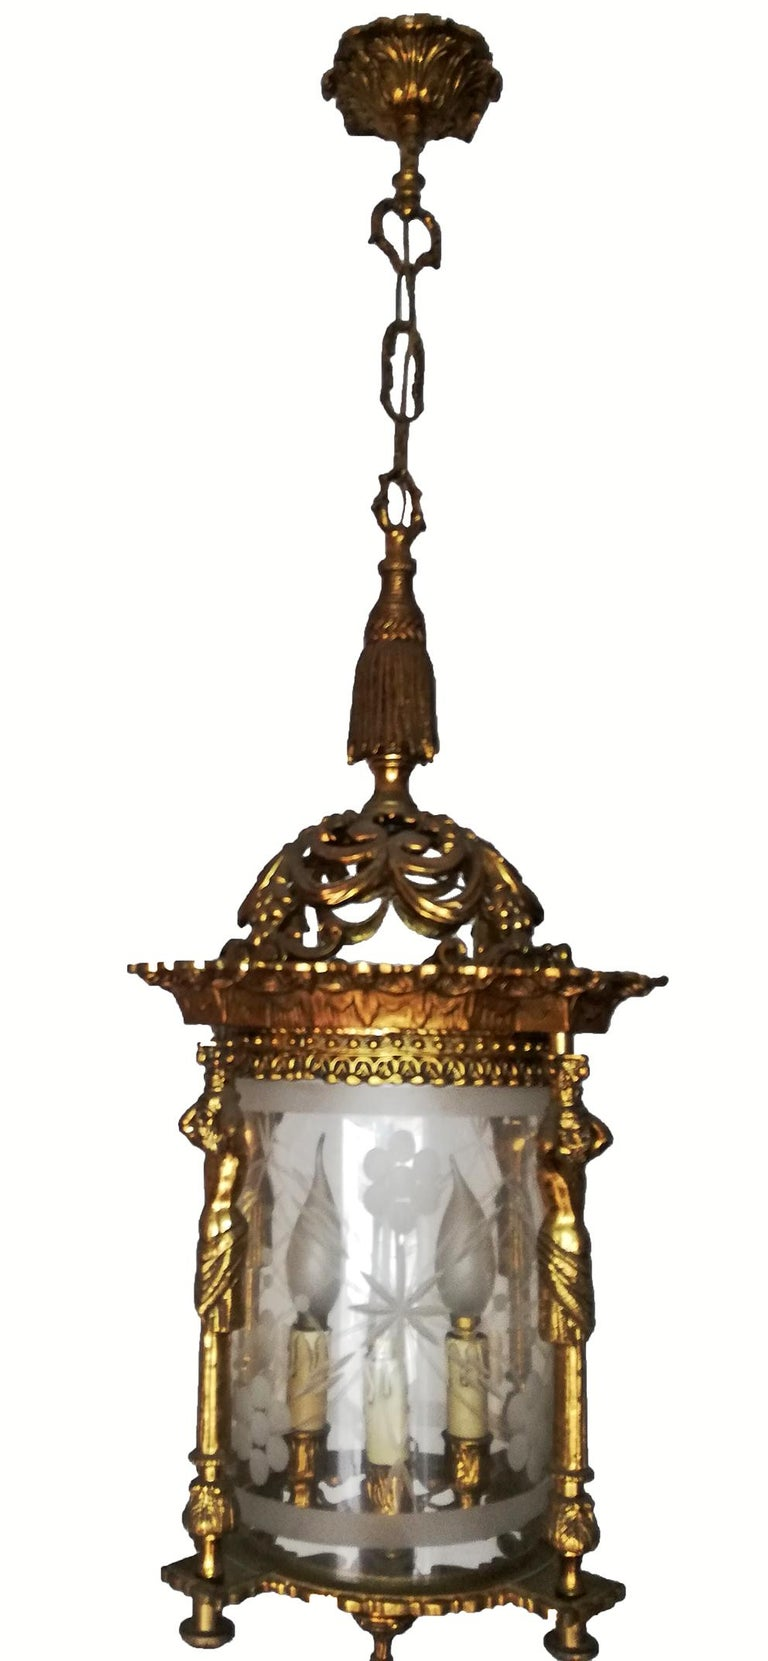 French Empire Caryatids Fire Gilded Bronze Cut Glass 4-Light Lantern Chandelier For Sale 3